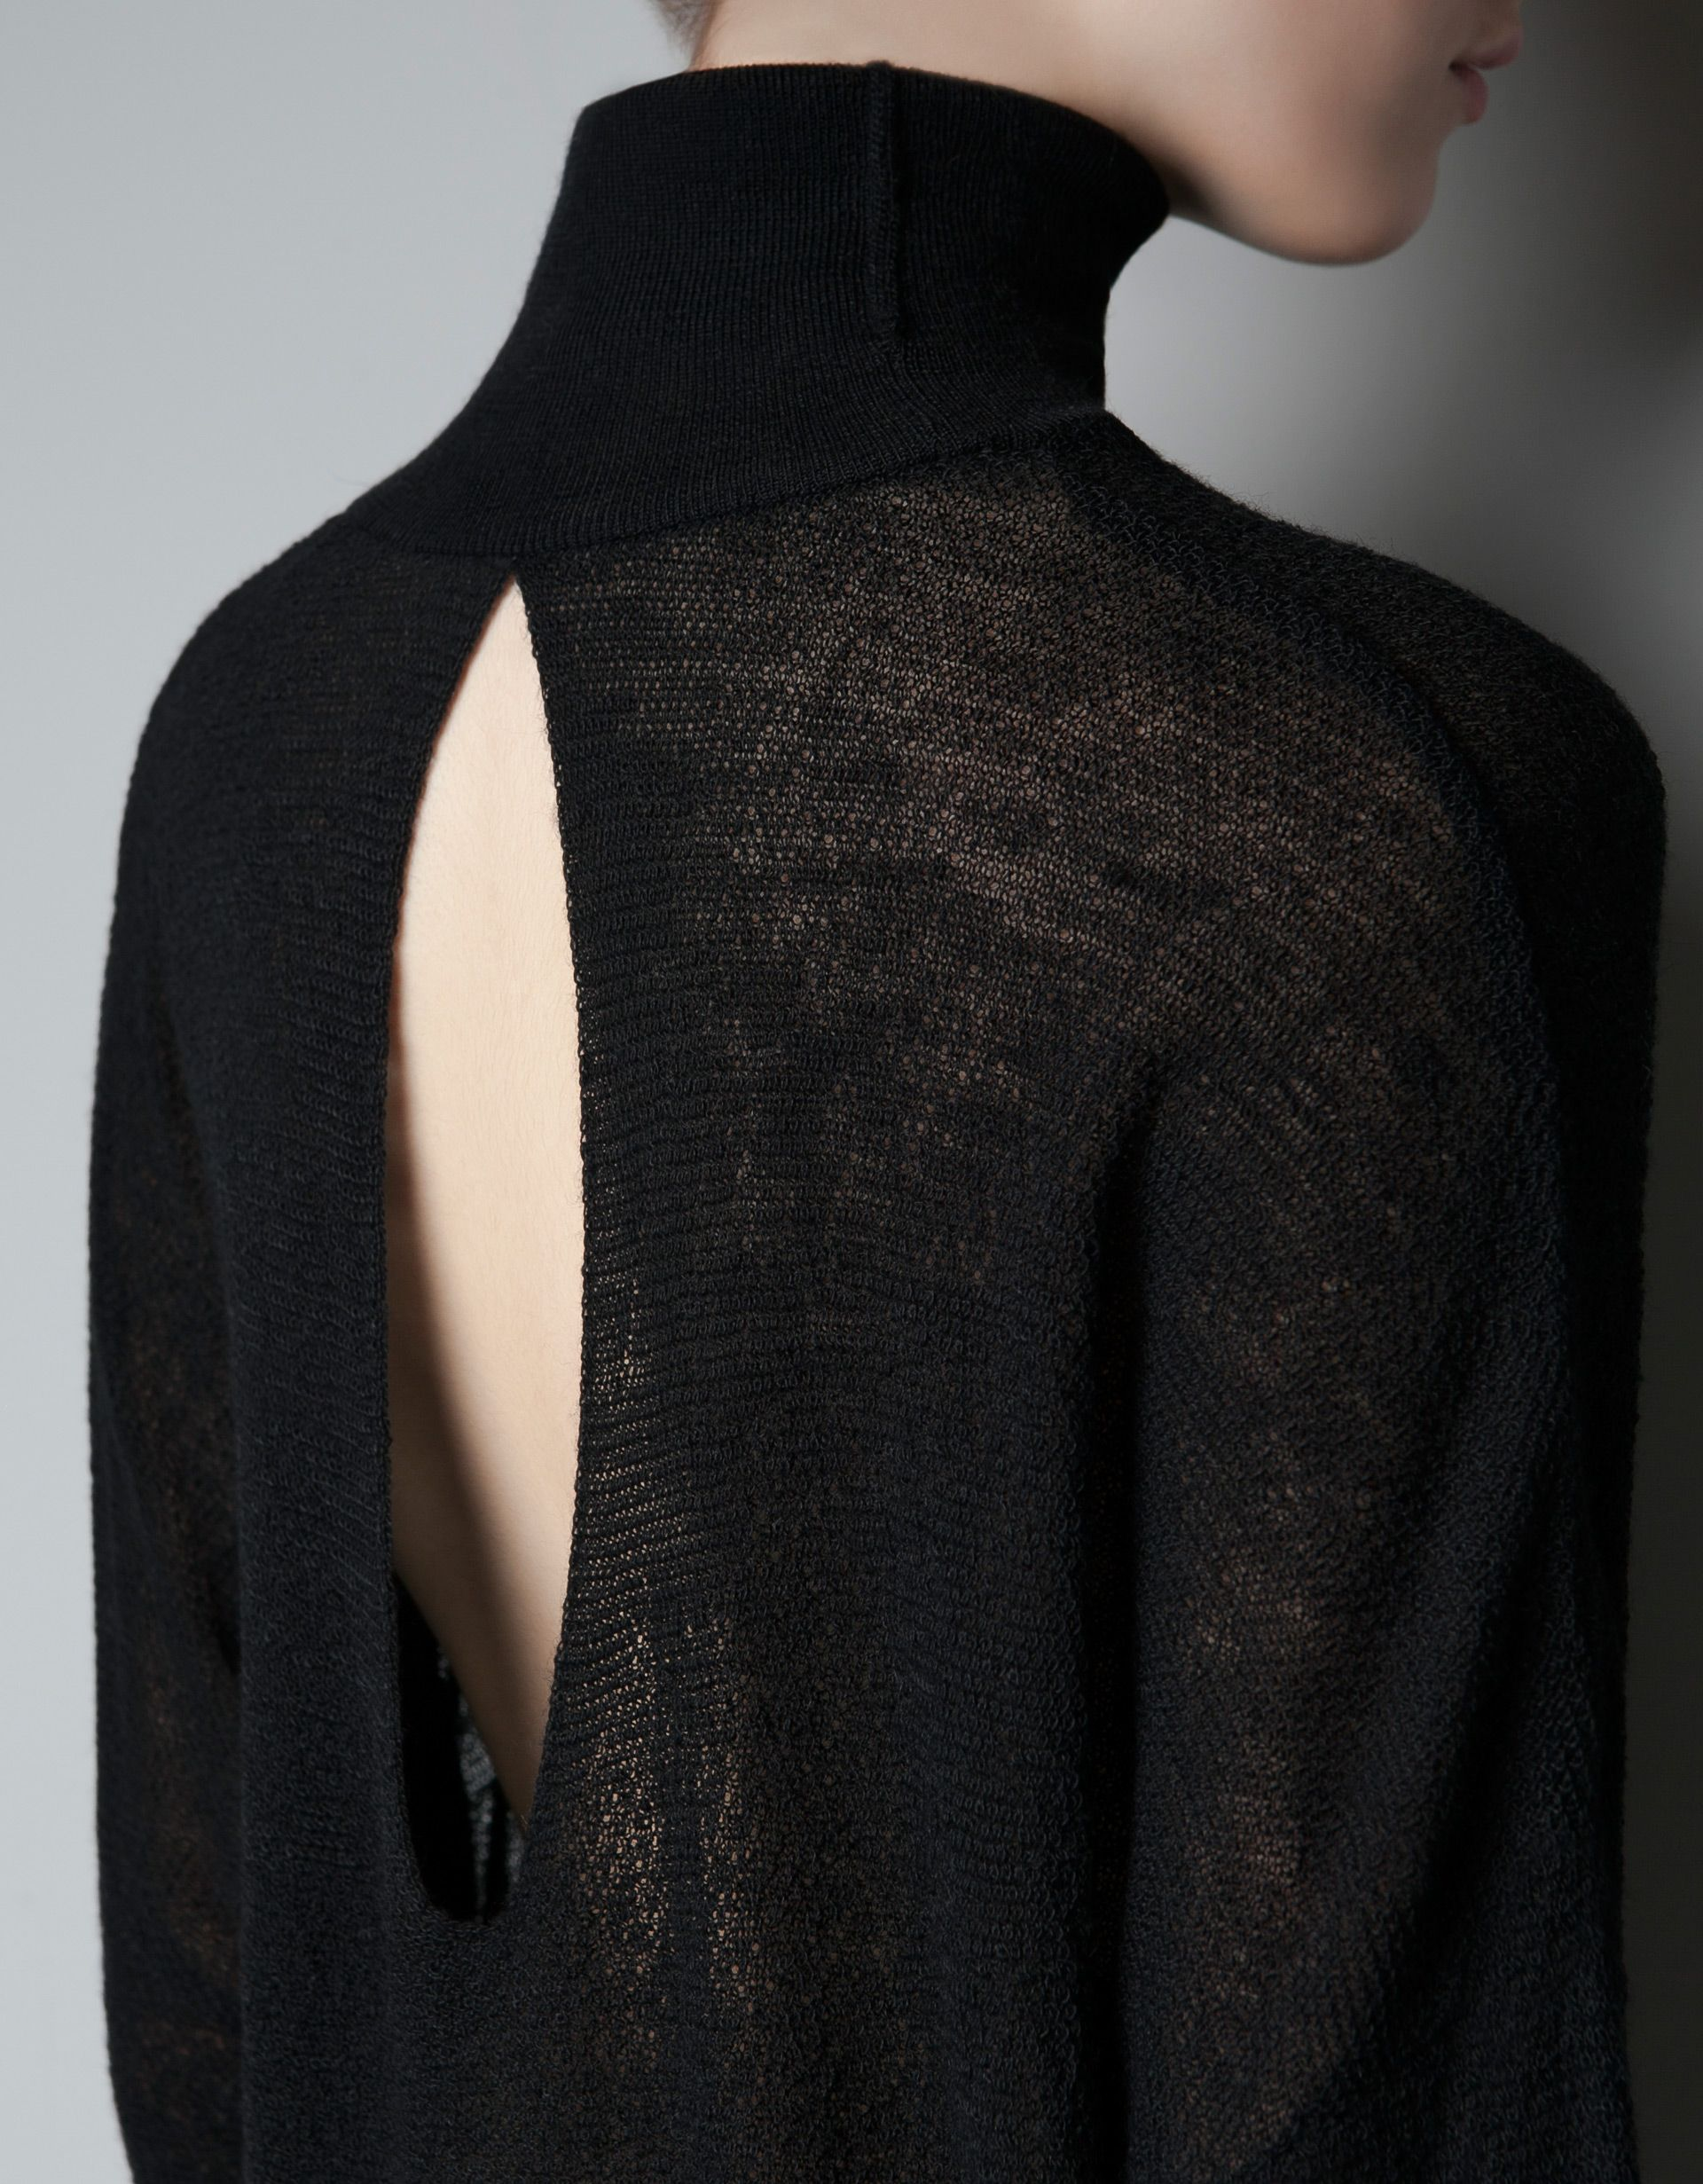 JUMPER WITH TEARDROP OPENING AT THE BACK - Knitwear - Woman - New collection - ZARA Denmark